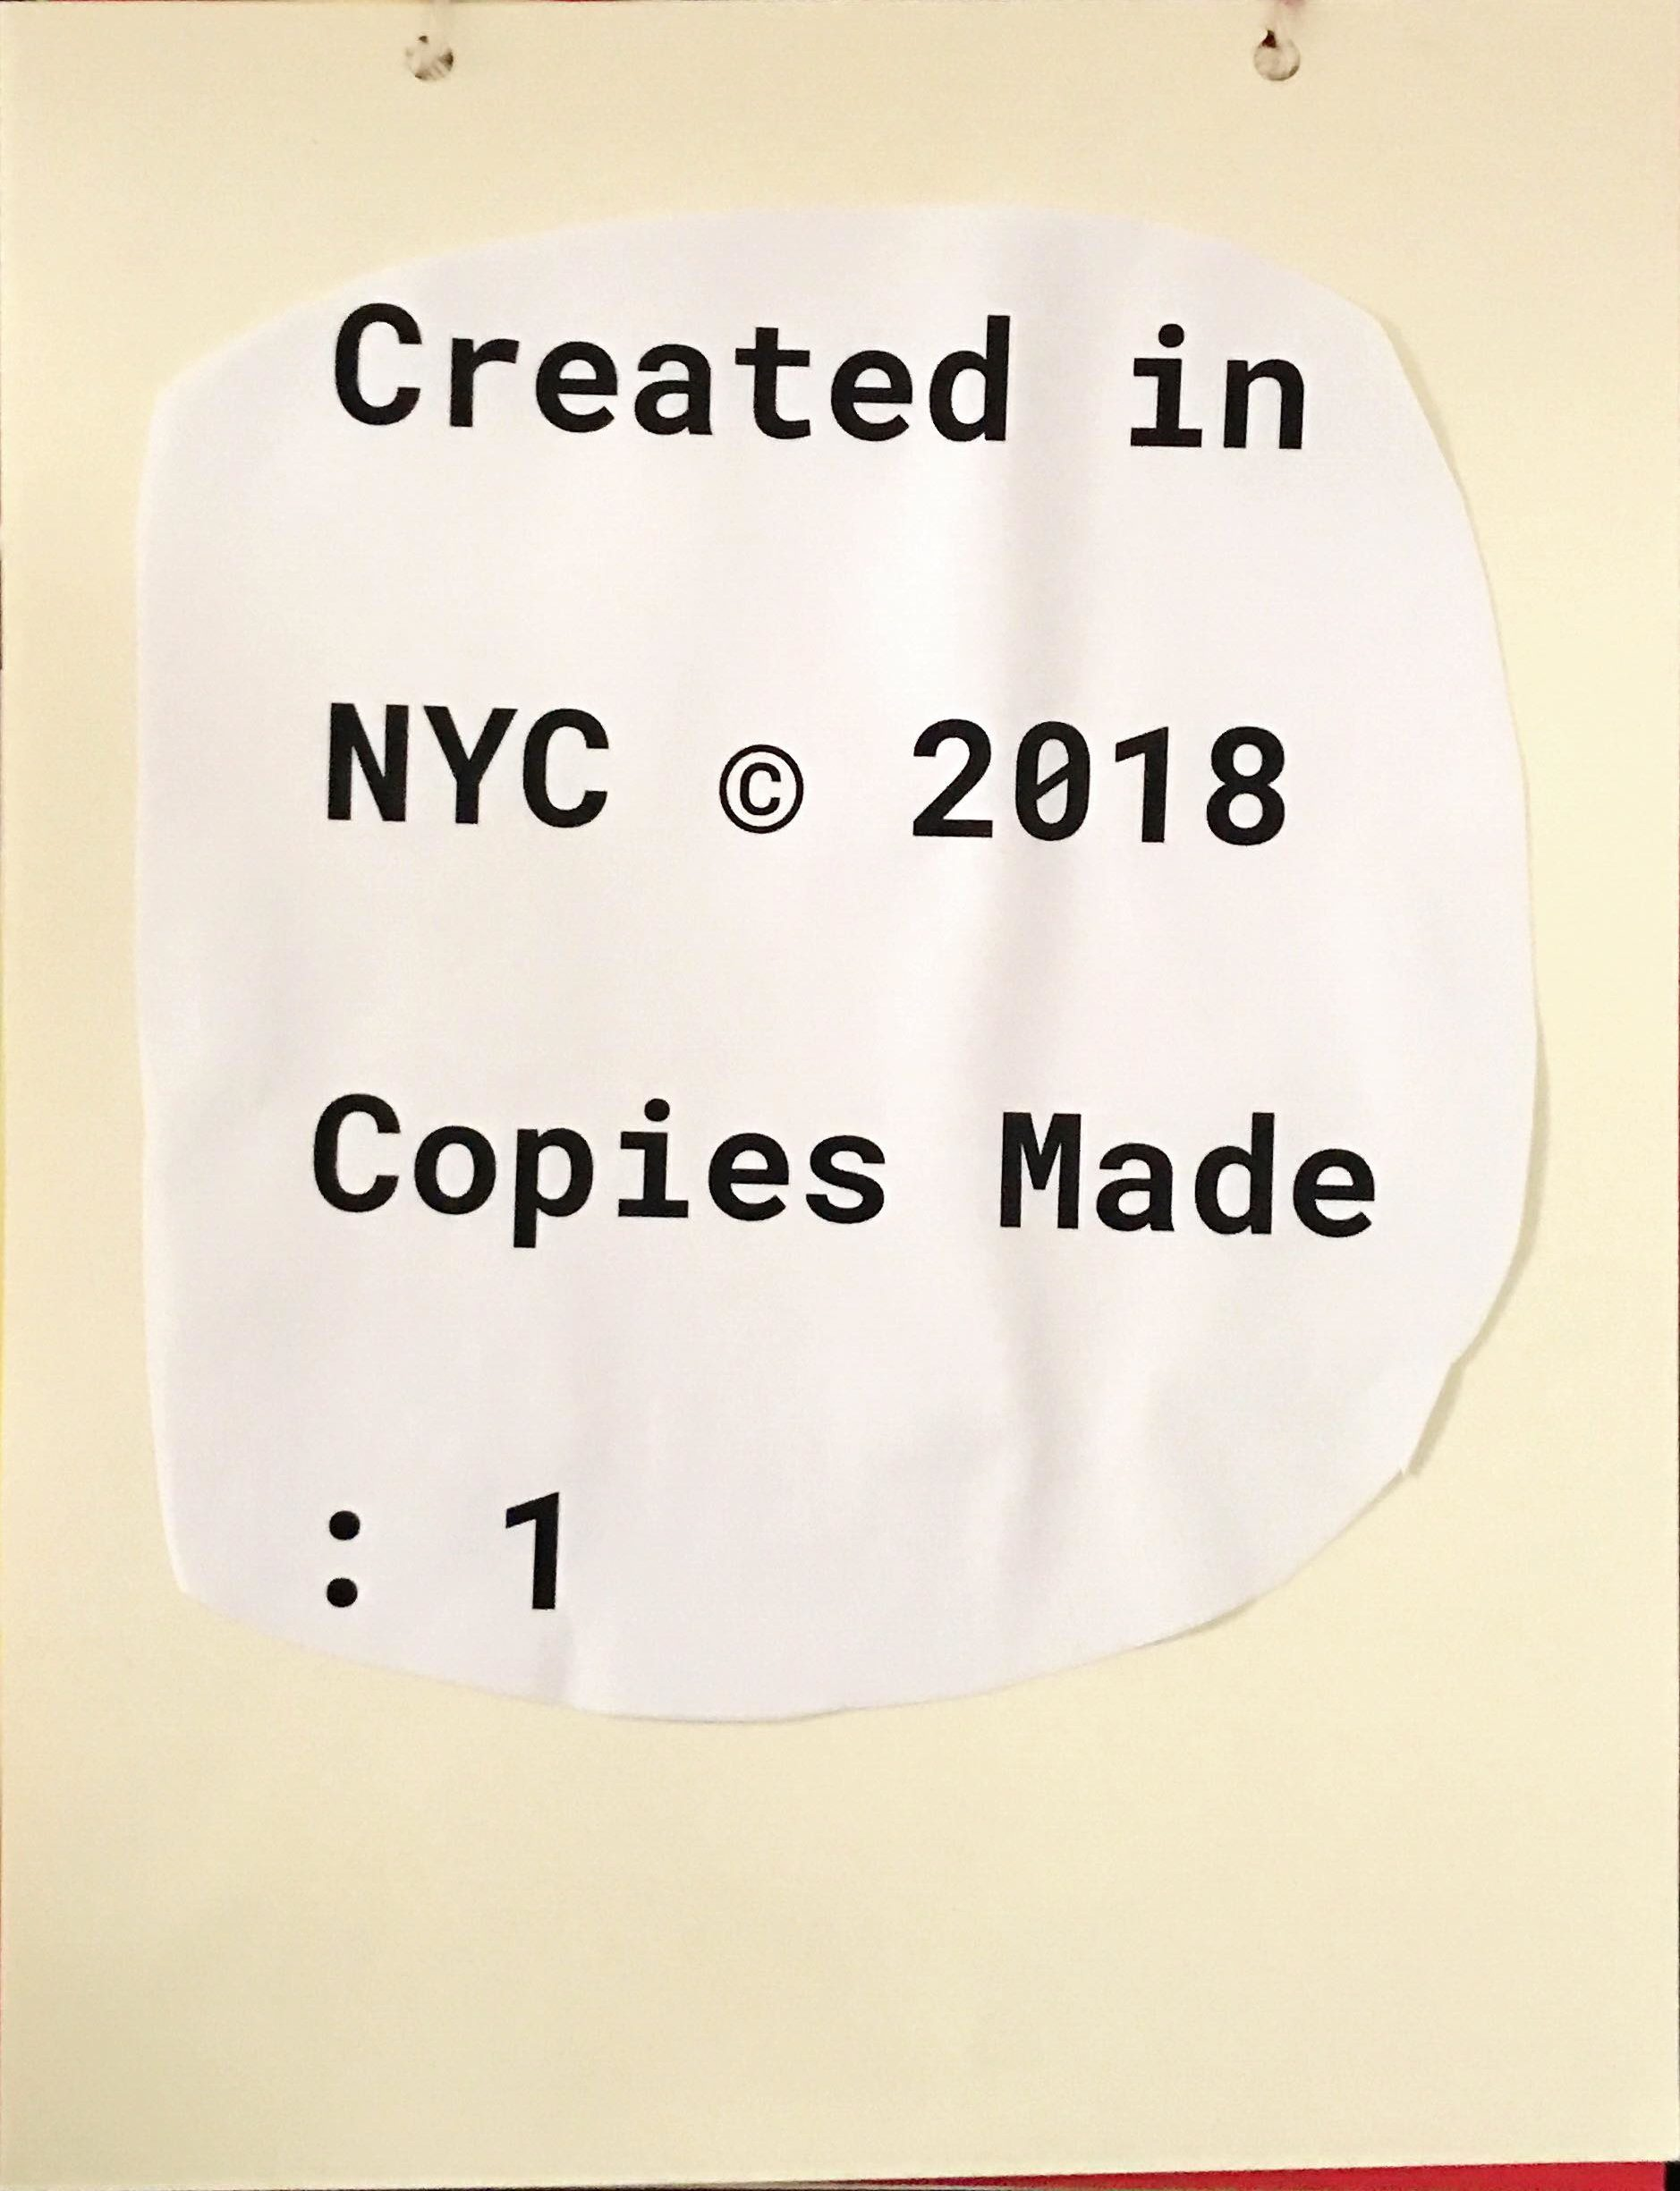 Copyrights, year that it was produced in, how many copies was made.